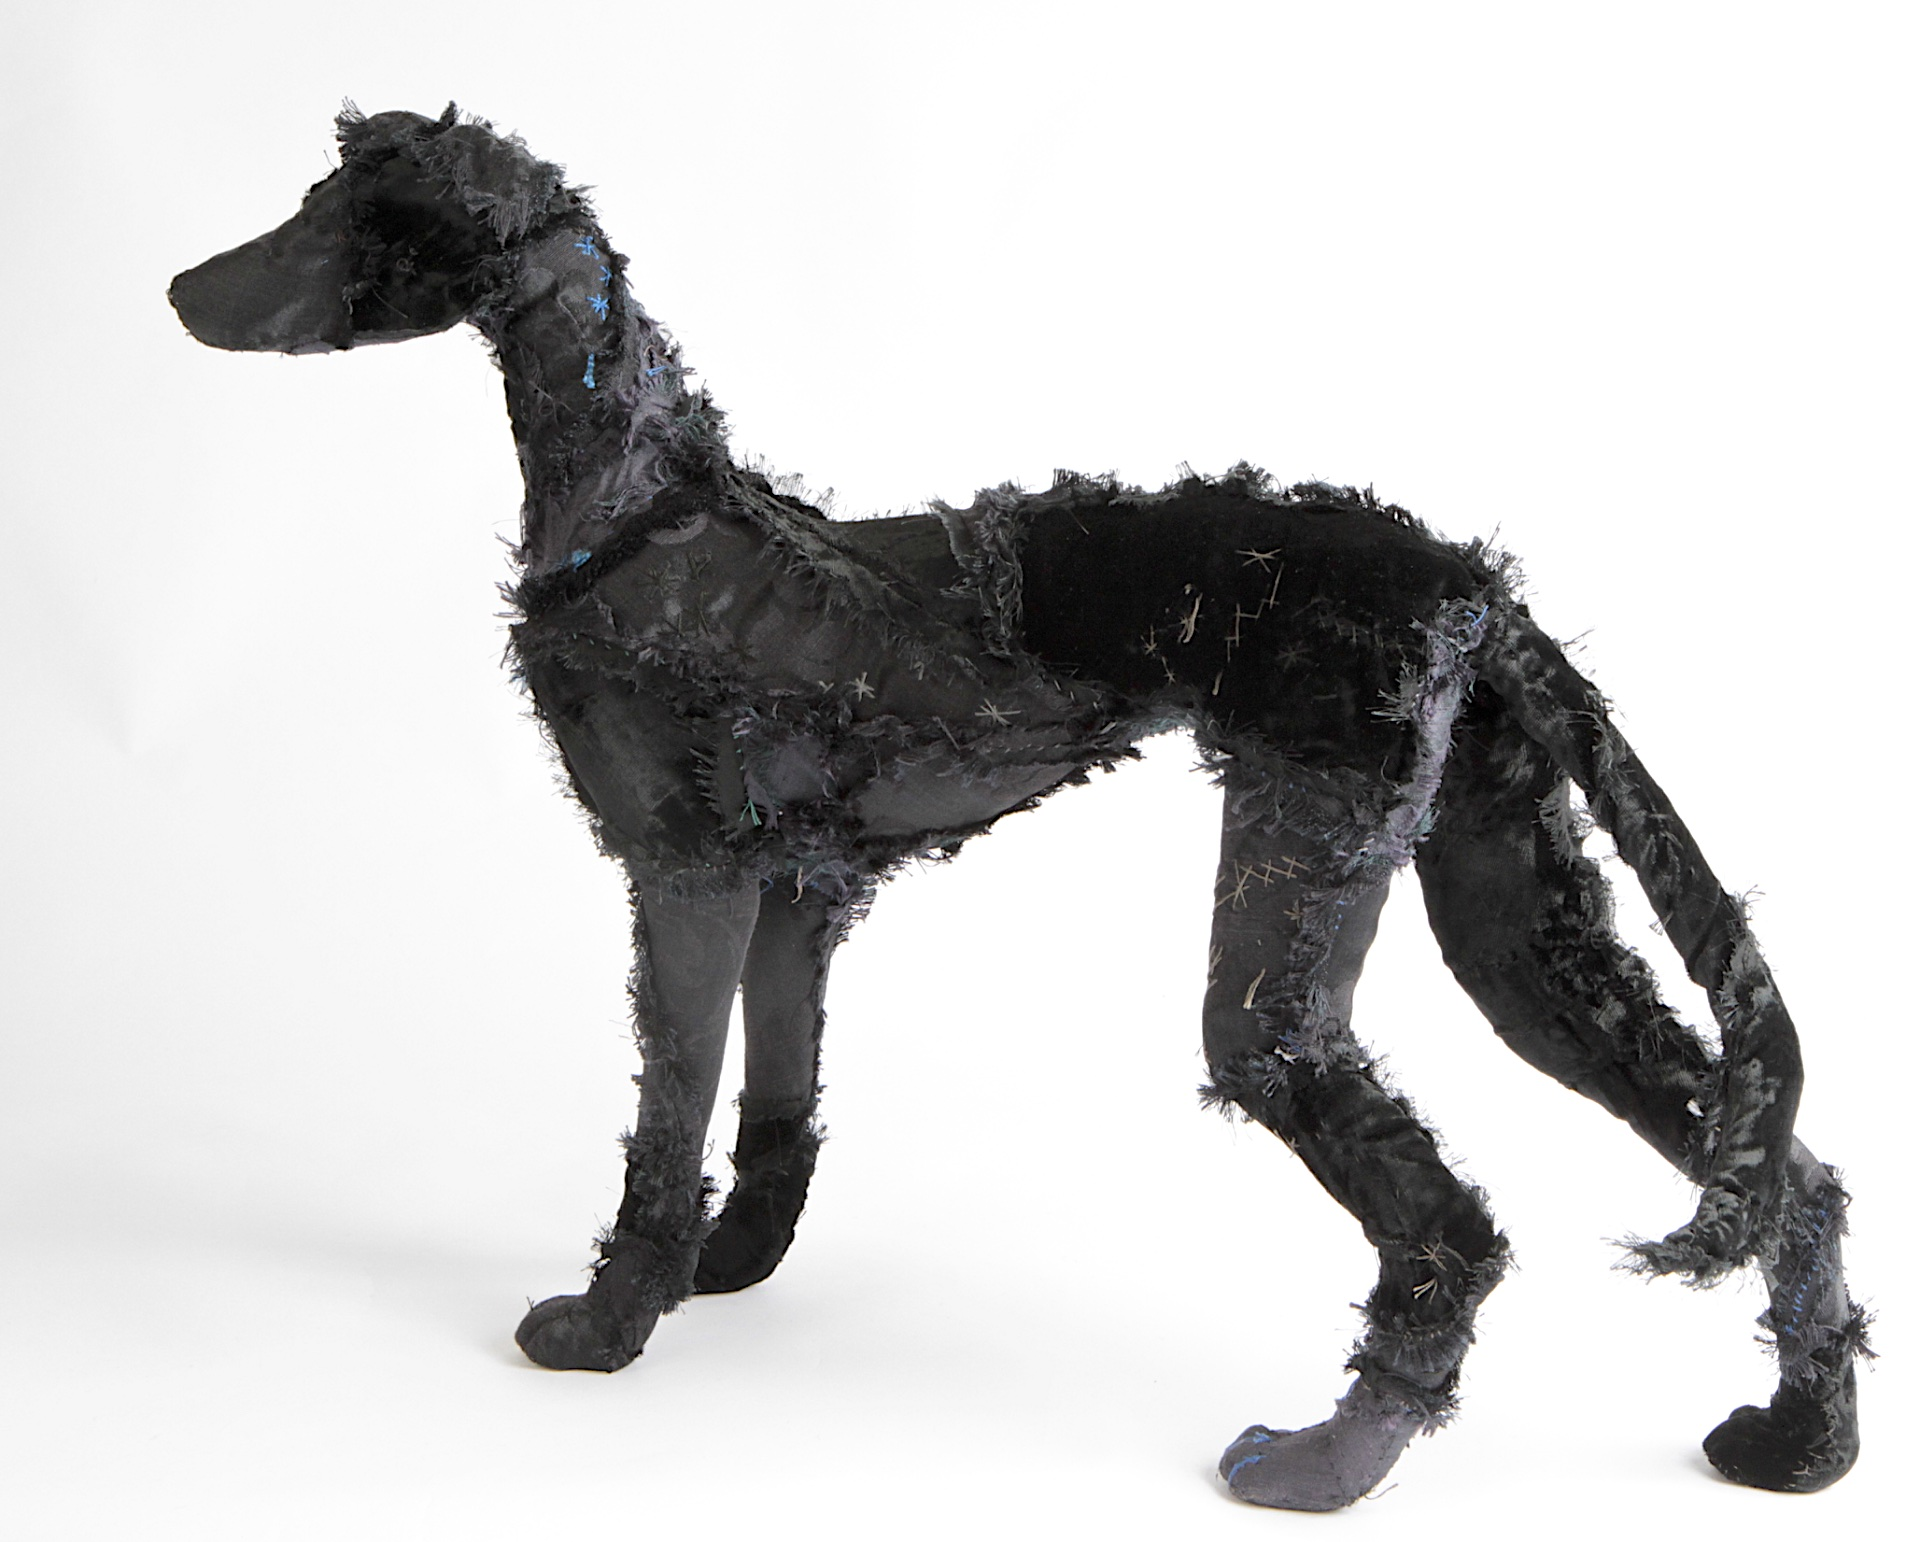 Hound made with a strong wire armature, and vintage textiles with some embroidery